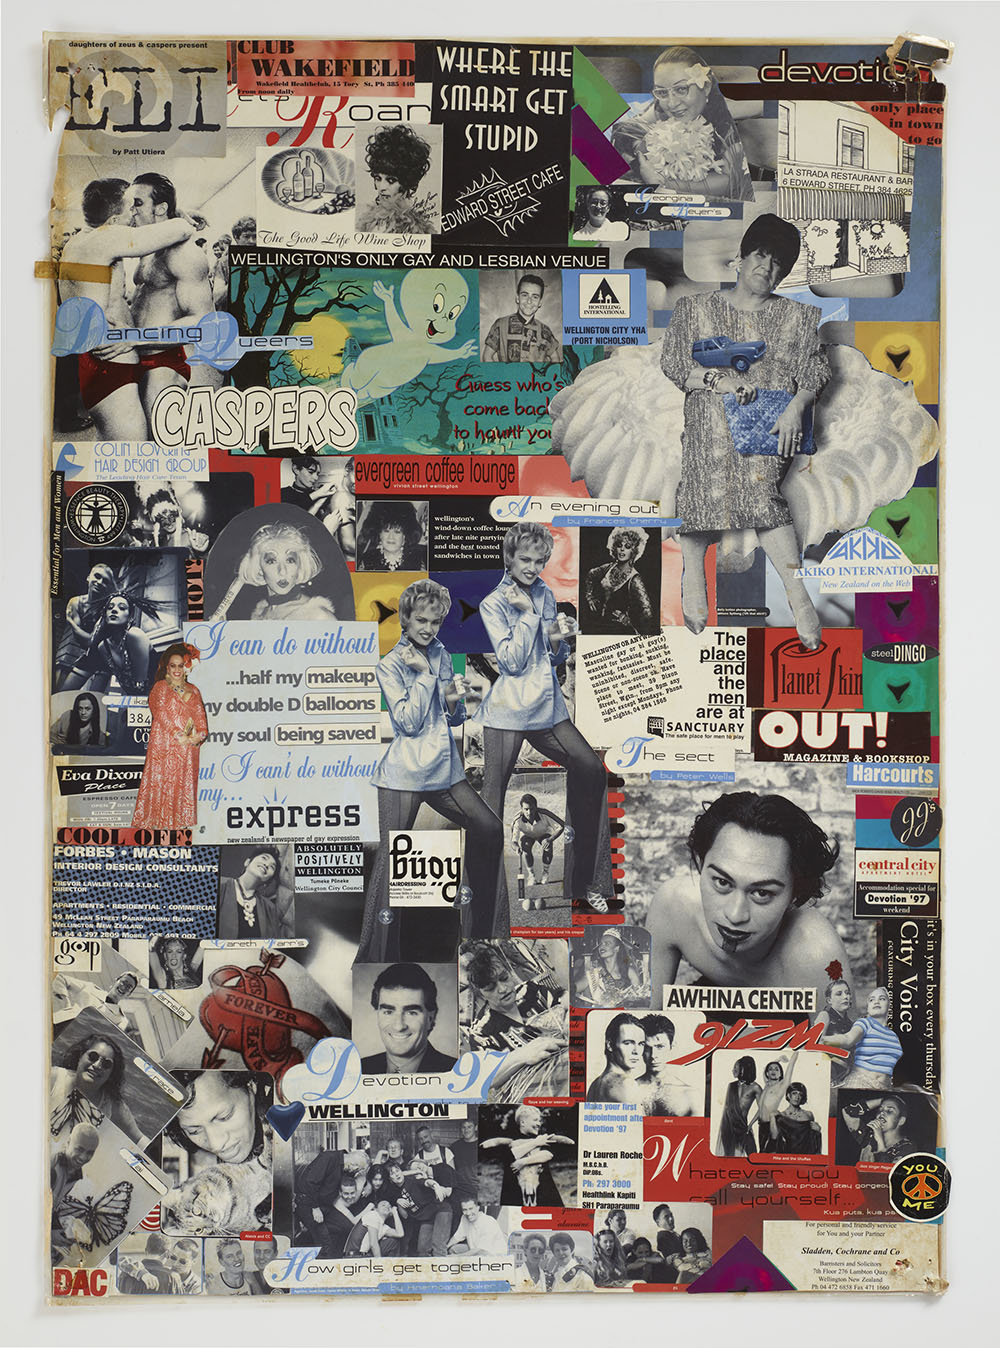 pride and prejudice research topics te papa s blog pride and te papa s blog pride and prejudice lgbtiq histories made visible collage circa 1997 wellington by